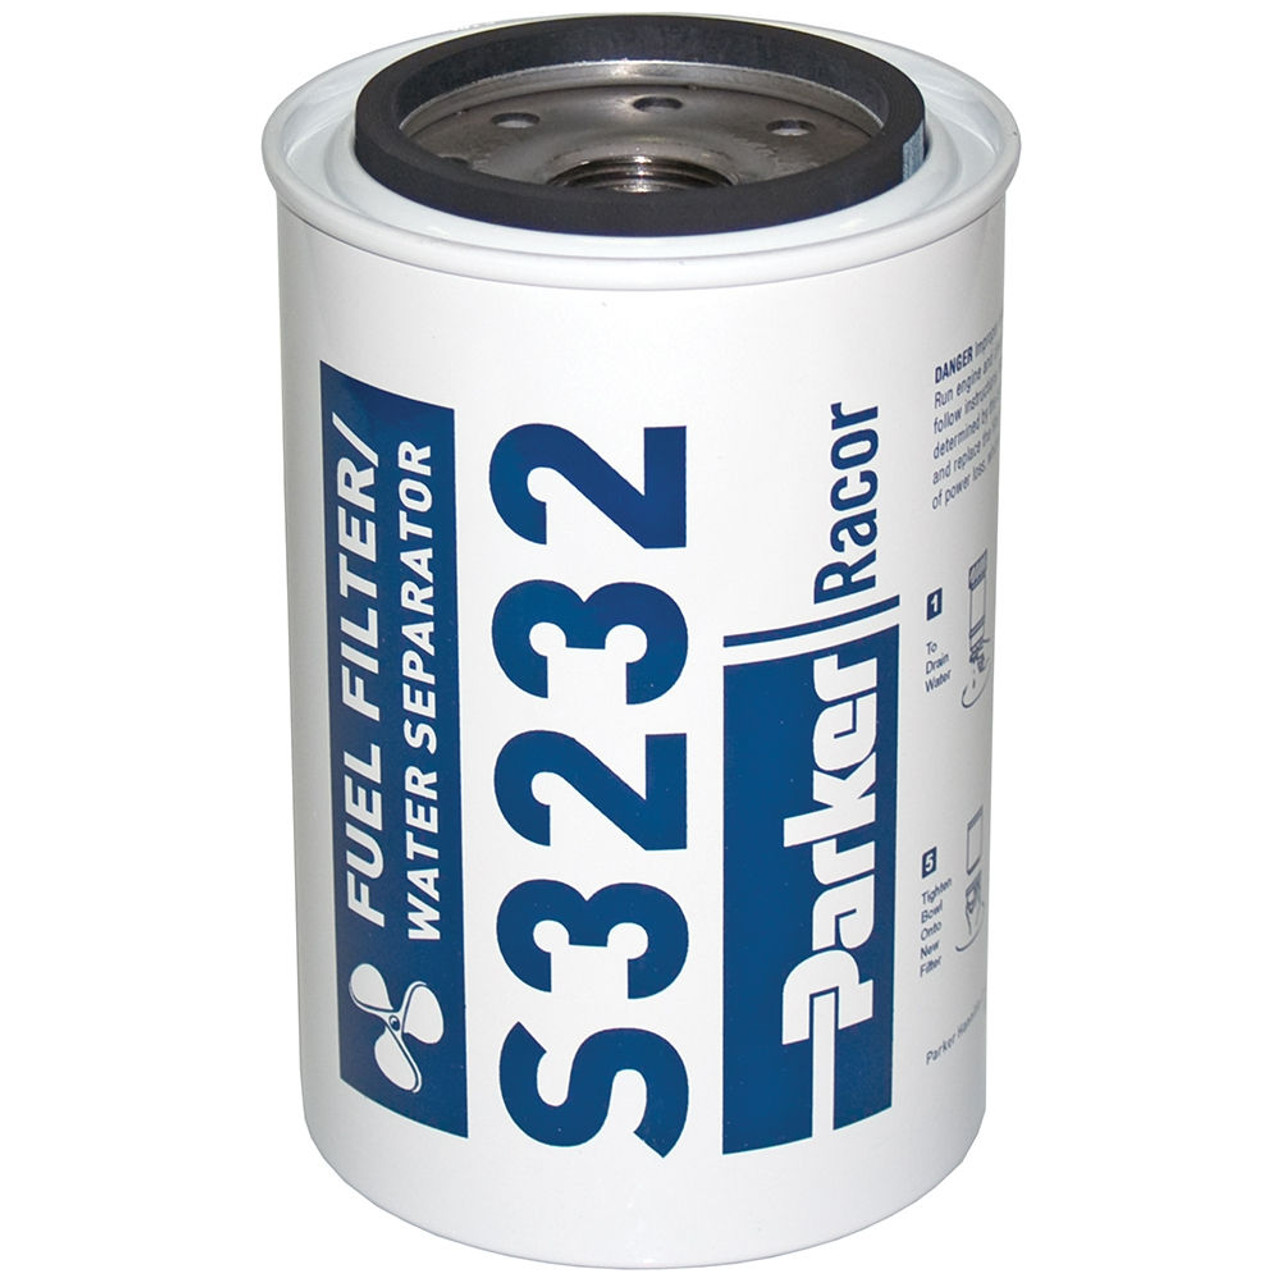 Racor 1 in. Marine Aquabloc Replacement Gasoline Filters - S3232 - 12 Qty